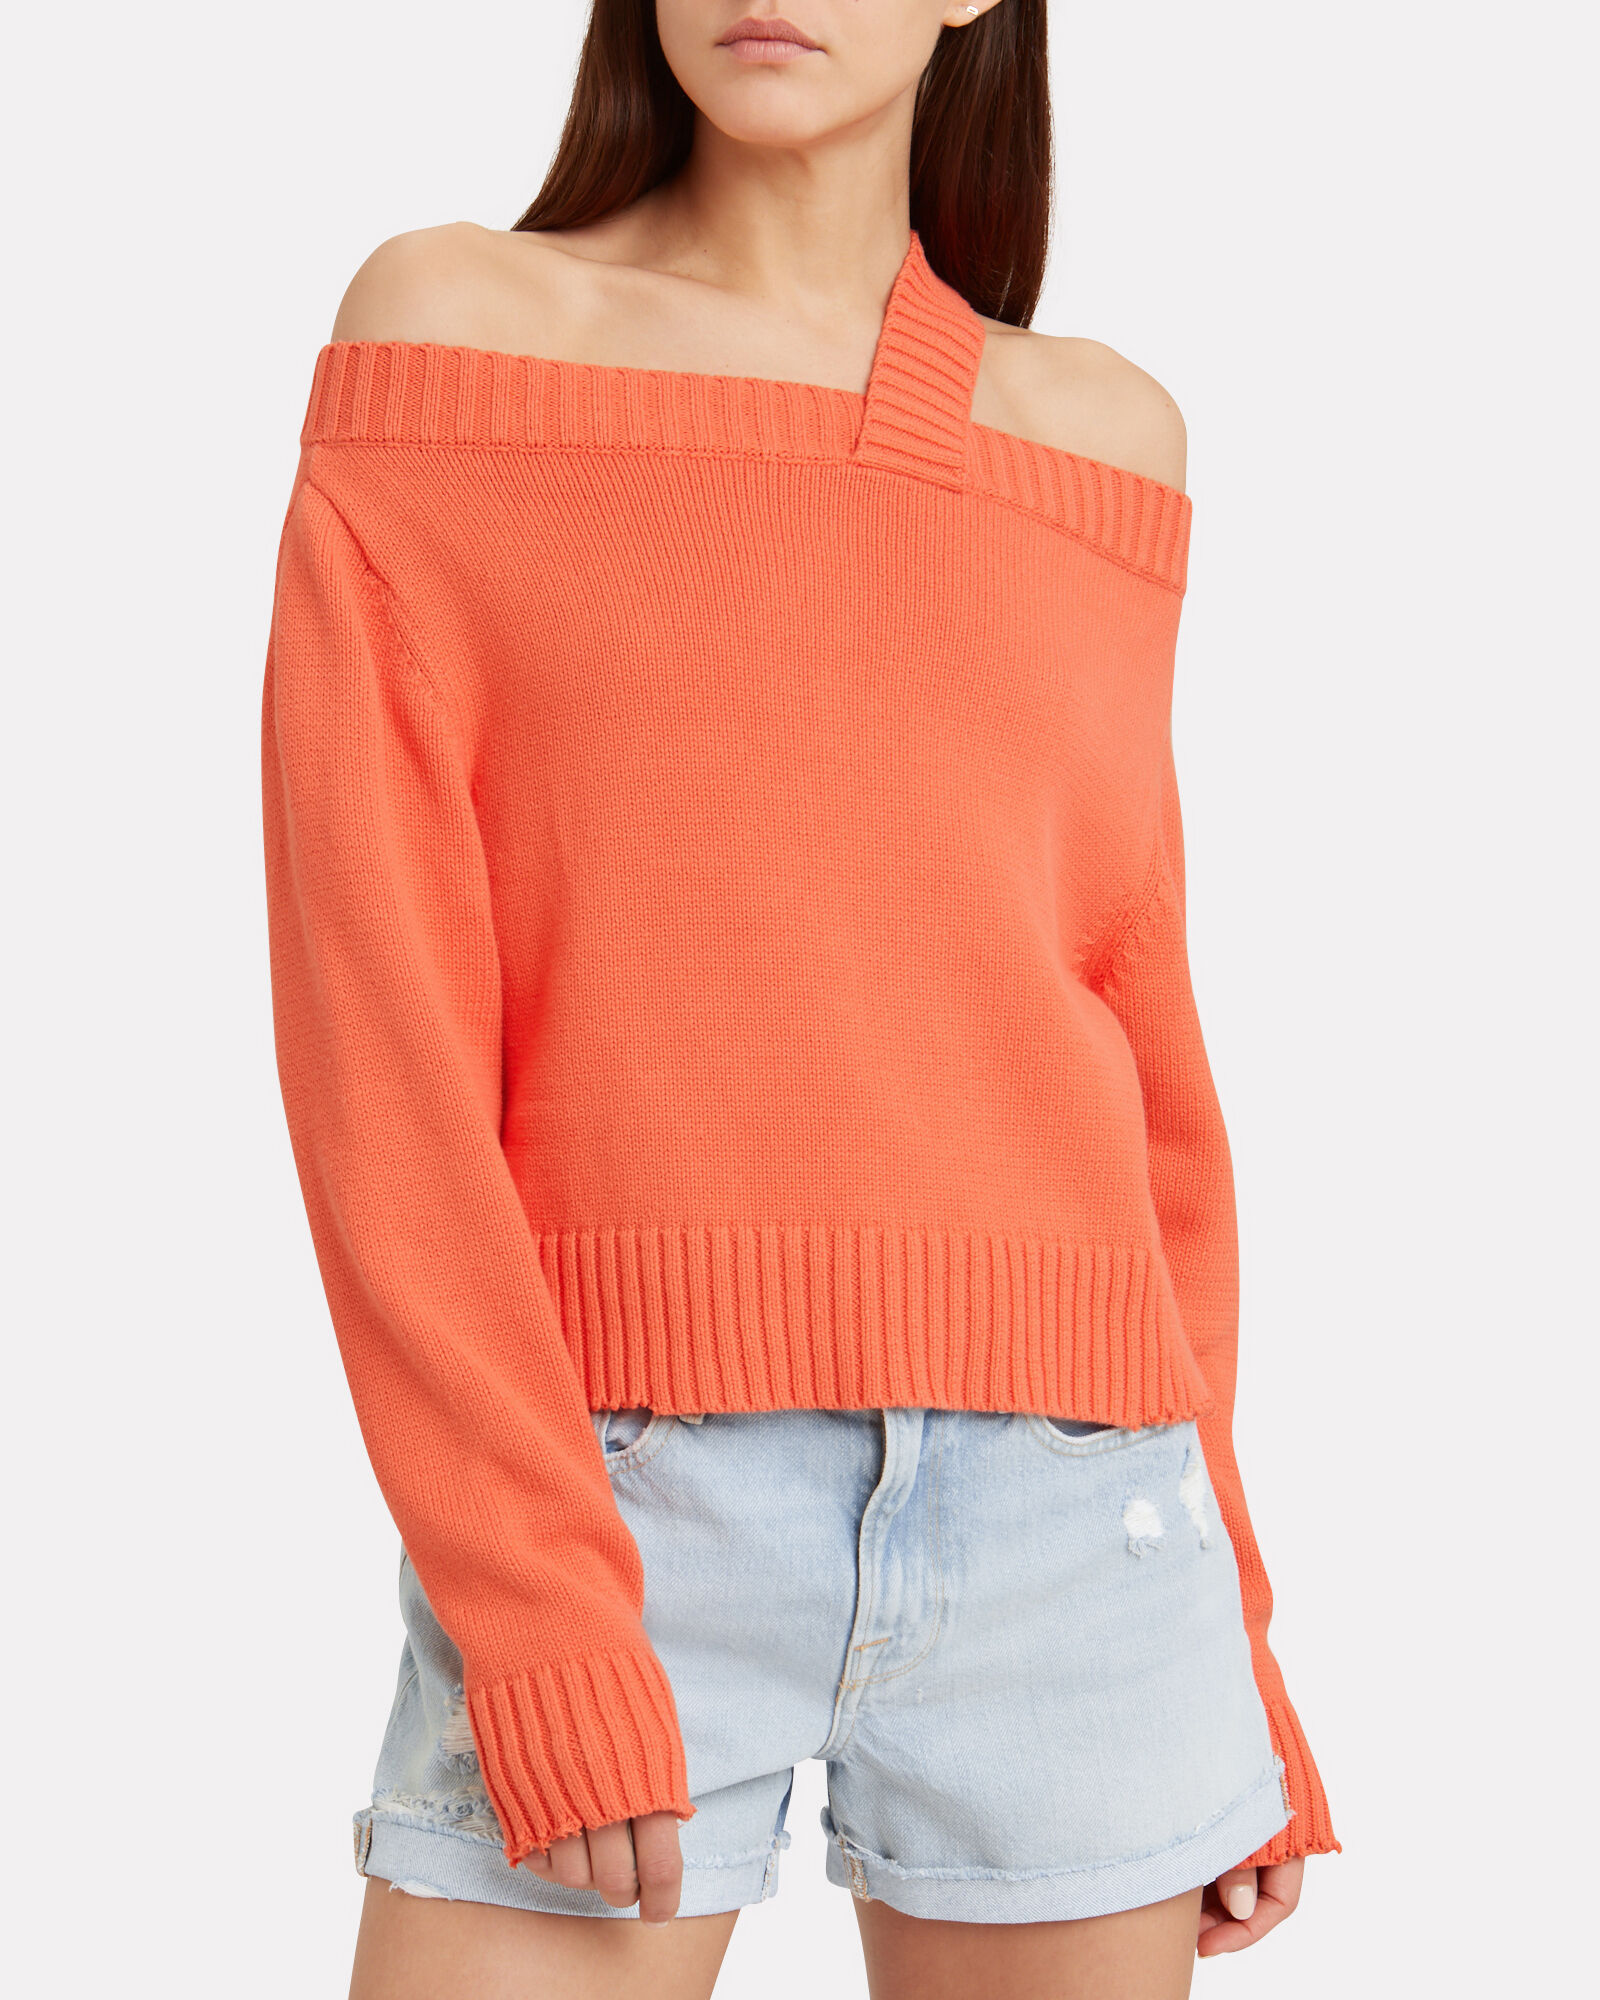 Beckett Knit Cotton Sweater, CORAL, hi-res